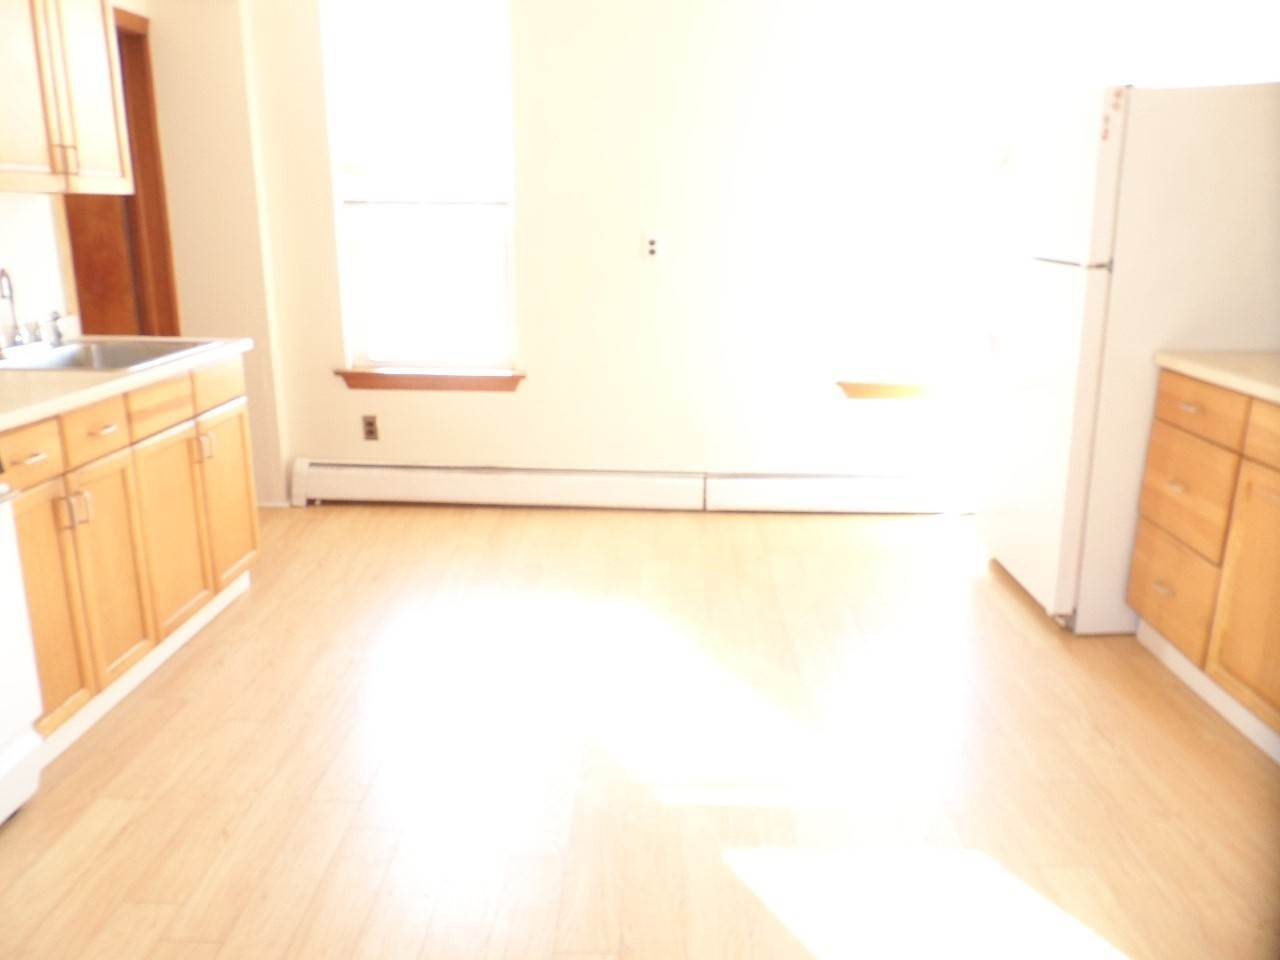 3. Single Family Home for Rent at 545 NEWARK AVENUE Jersey City, New Jersey, 07306 United States